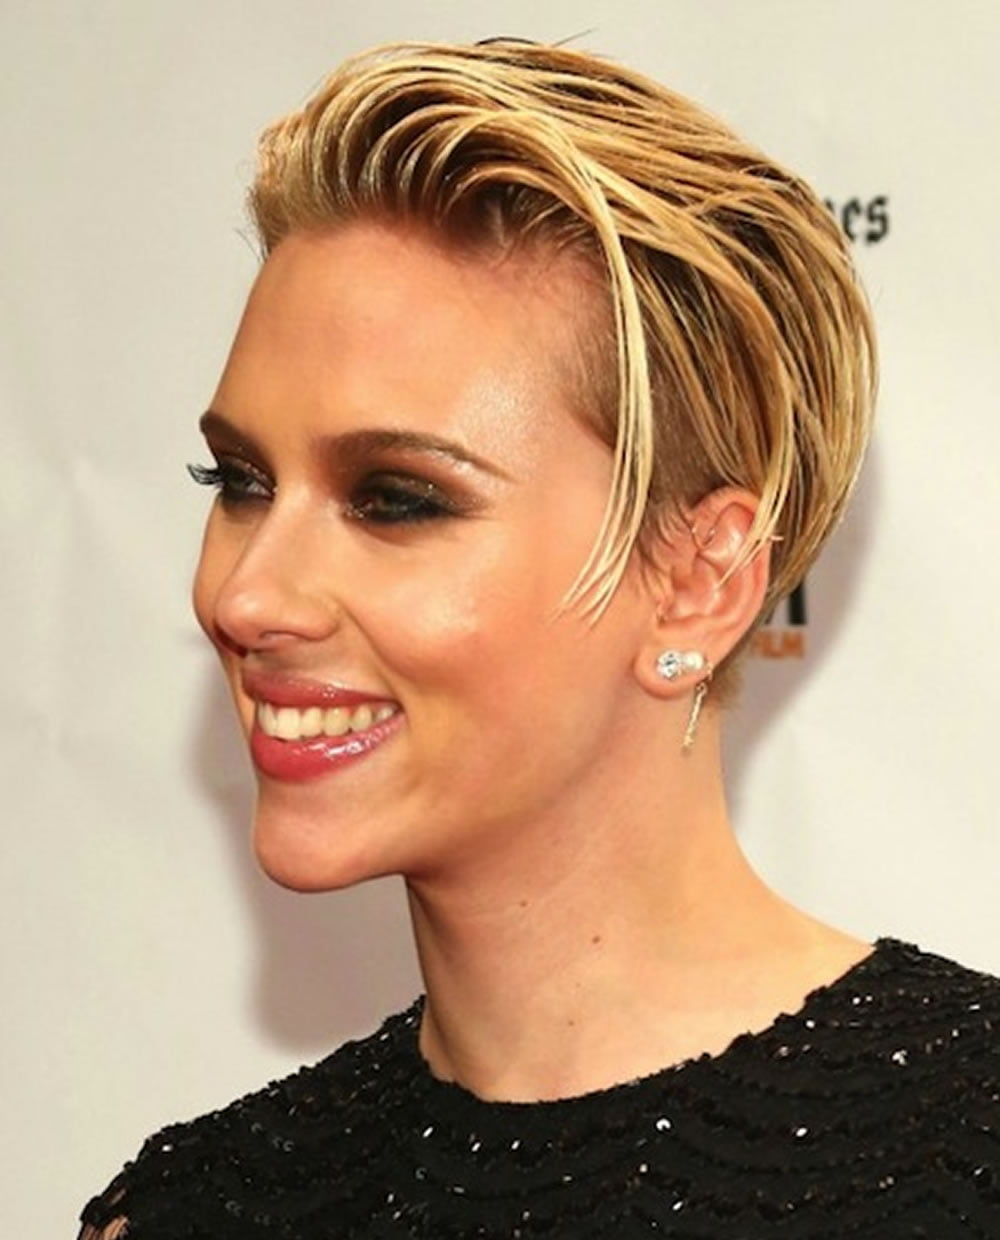 Scarlett Johansson S Hairstyles 2018 Amp Bob Pixie Haircuts For Short Hair Page 10 Hairstyles